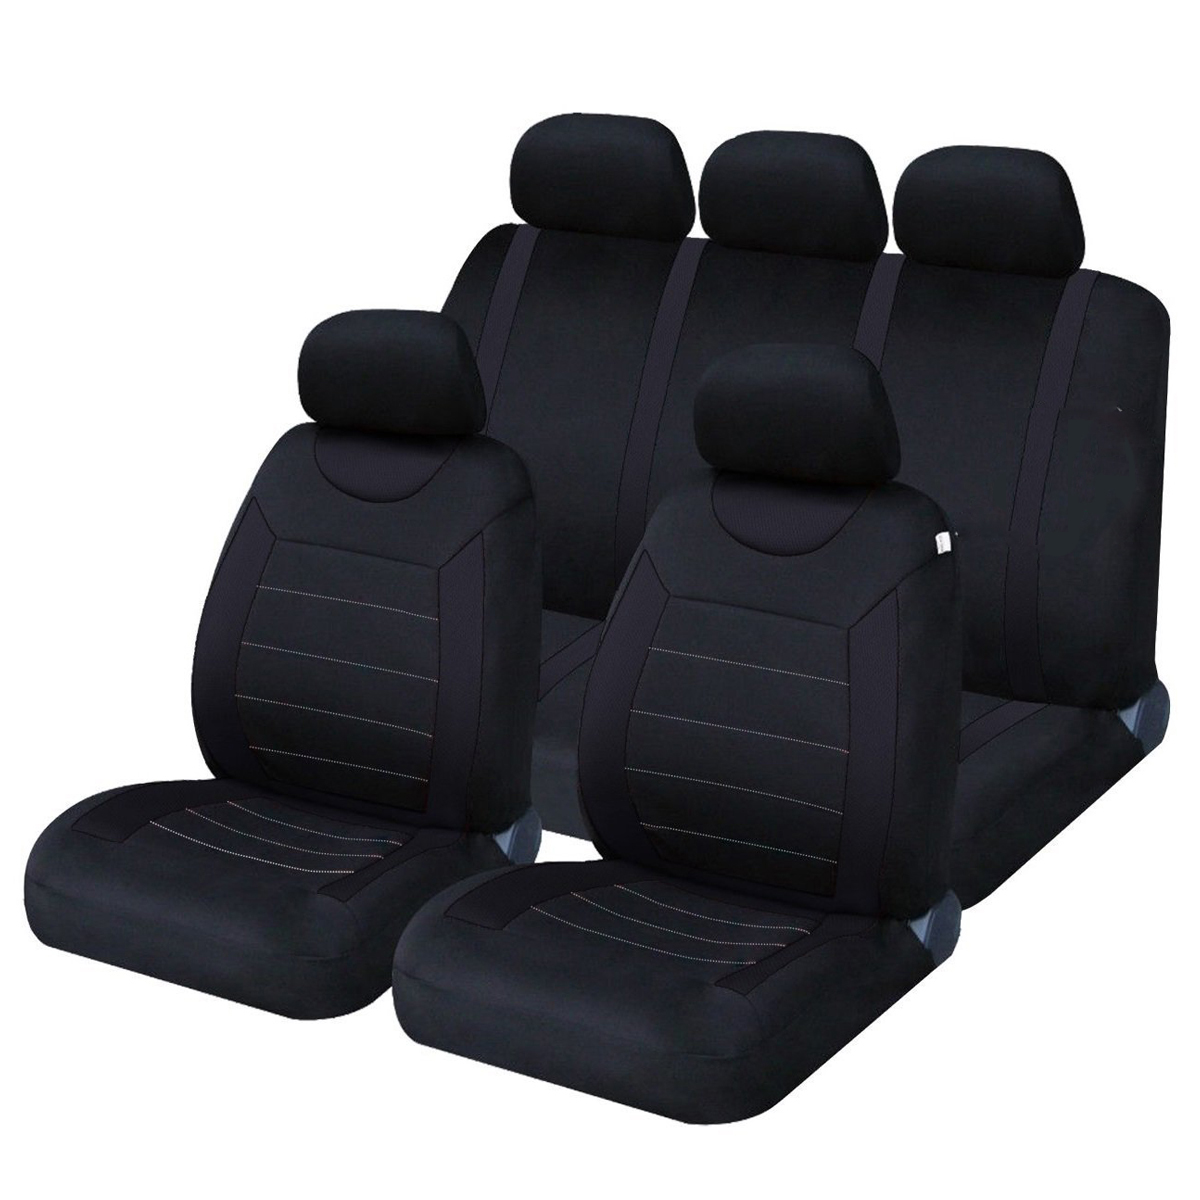 9PCS Universal Leather Deluxe Car Cover Seat Protector Cushion Front Rear Covers